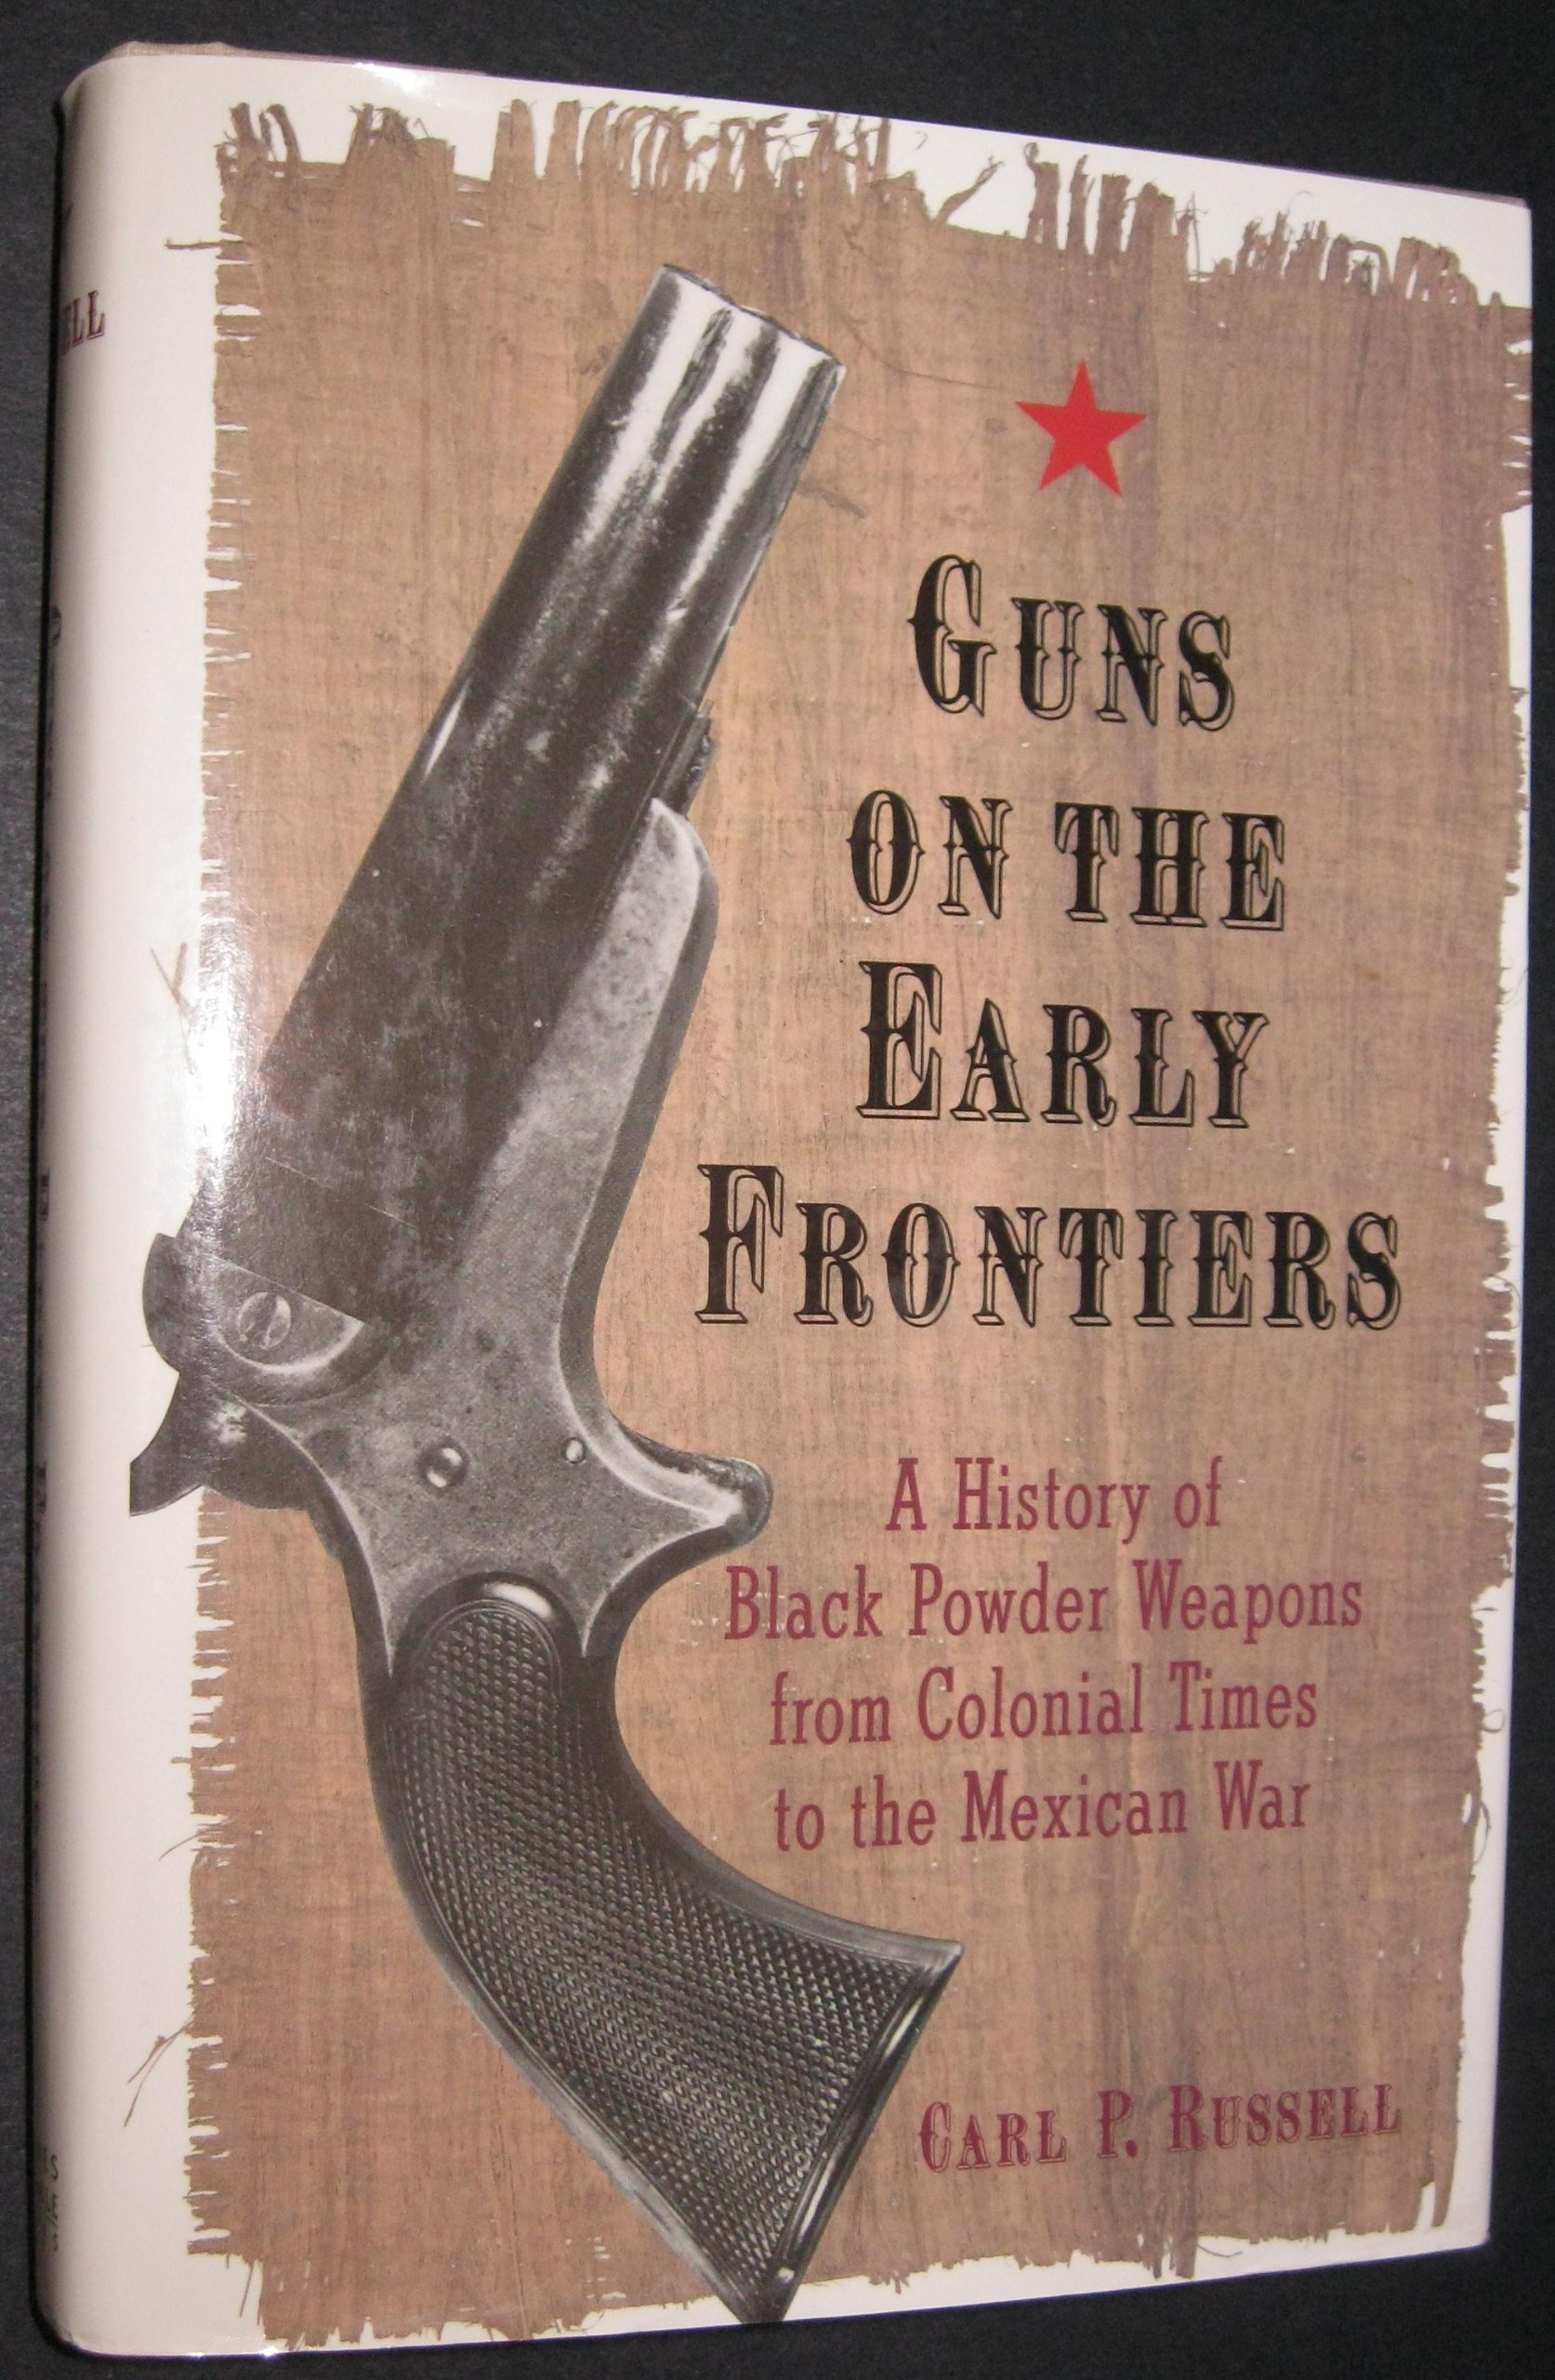 Guns on the early frontiers. A history of black powder weapons from colonial times to the Mexican War.